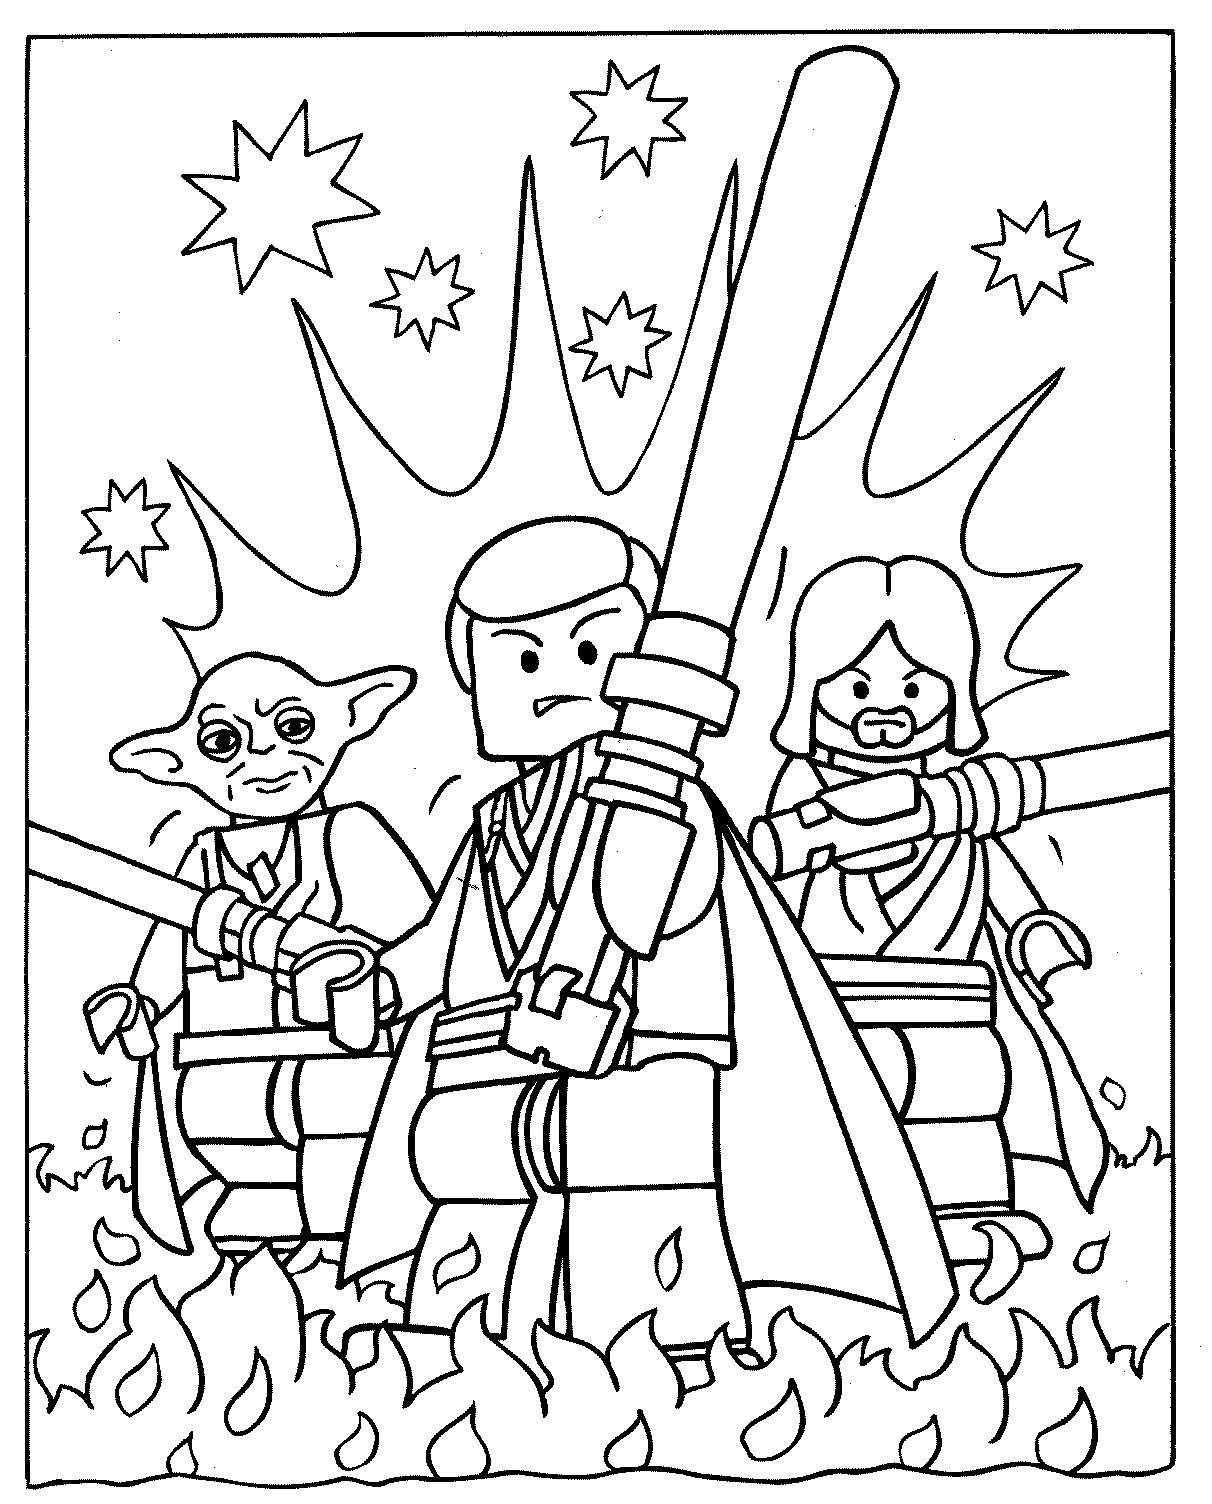 Christmas Lego Coloring Pages With Sheets Gulfmik 558937630c44